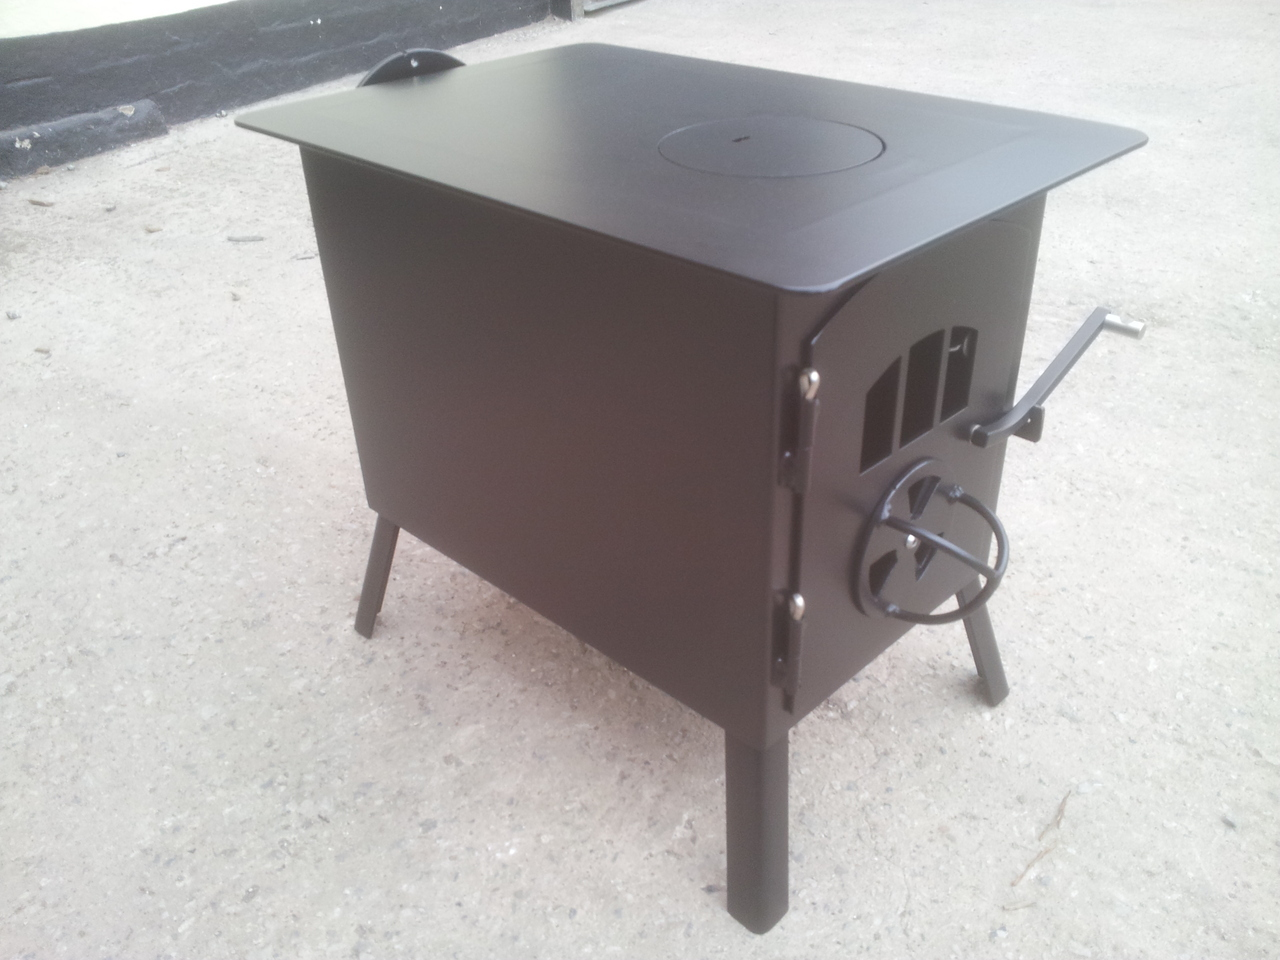 4kw Stove With Rear Exiting Flue Kit Karma Canvas